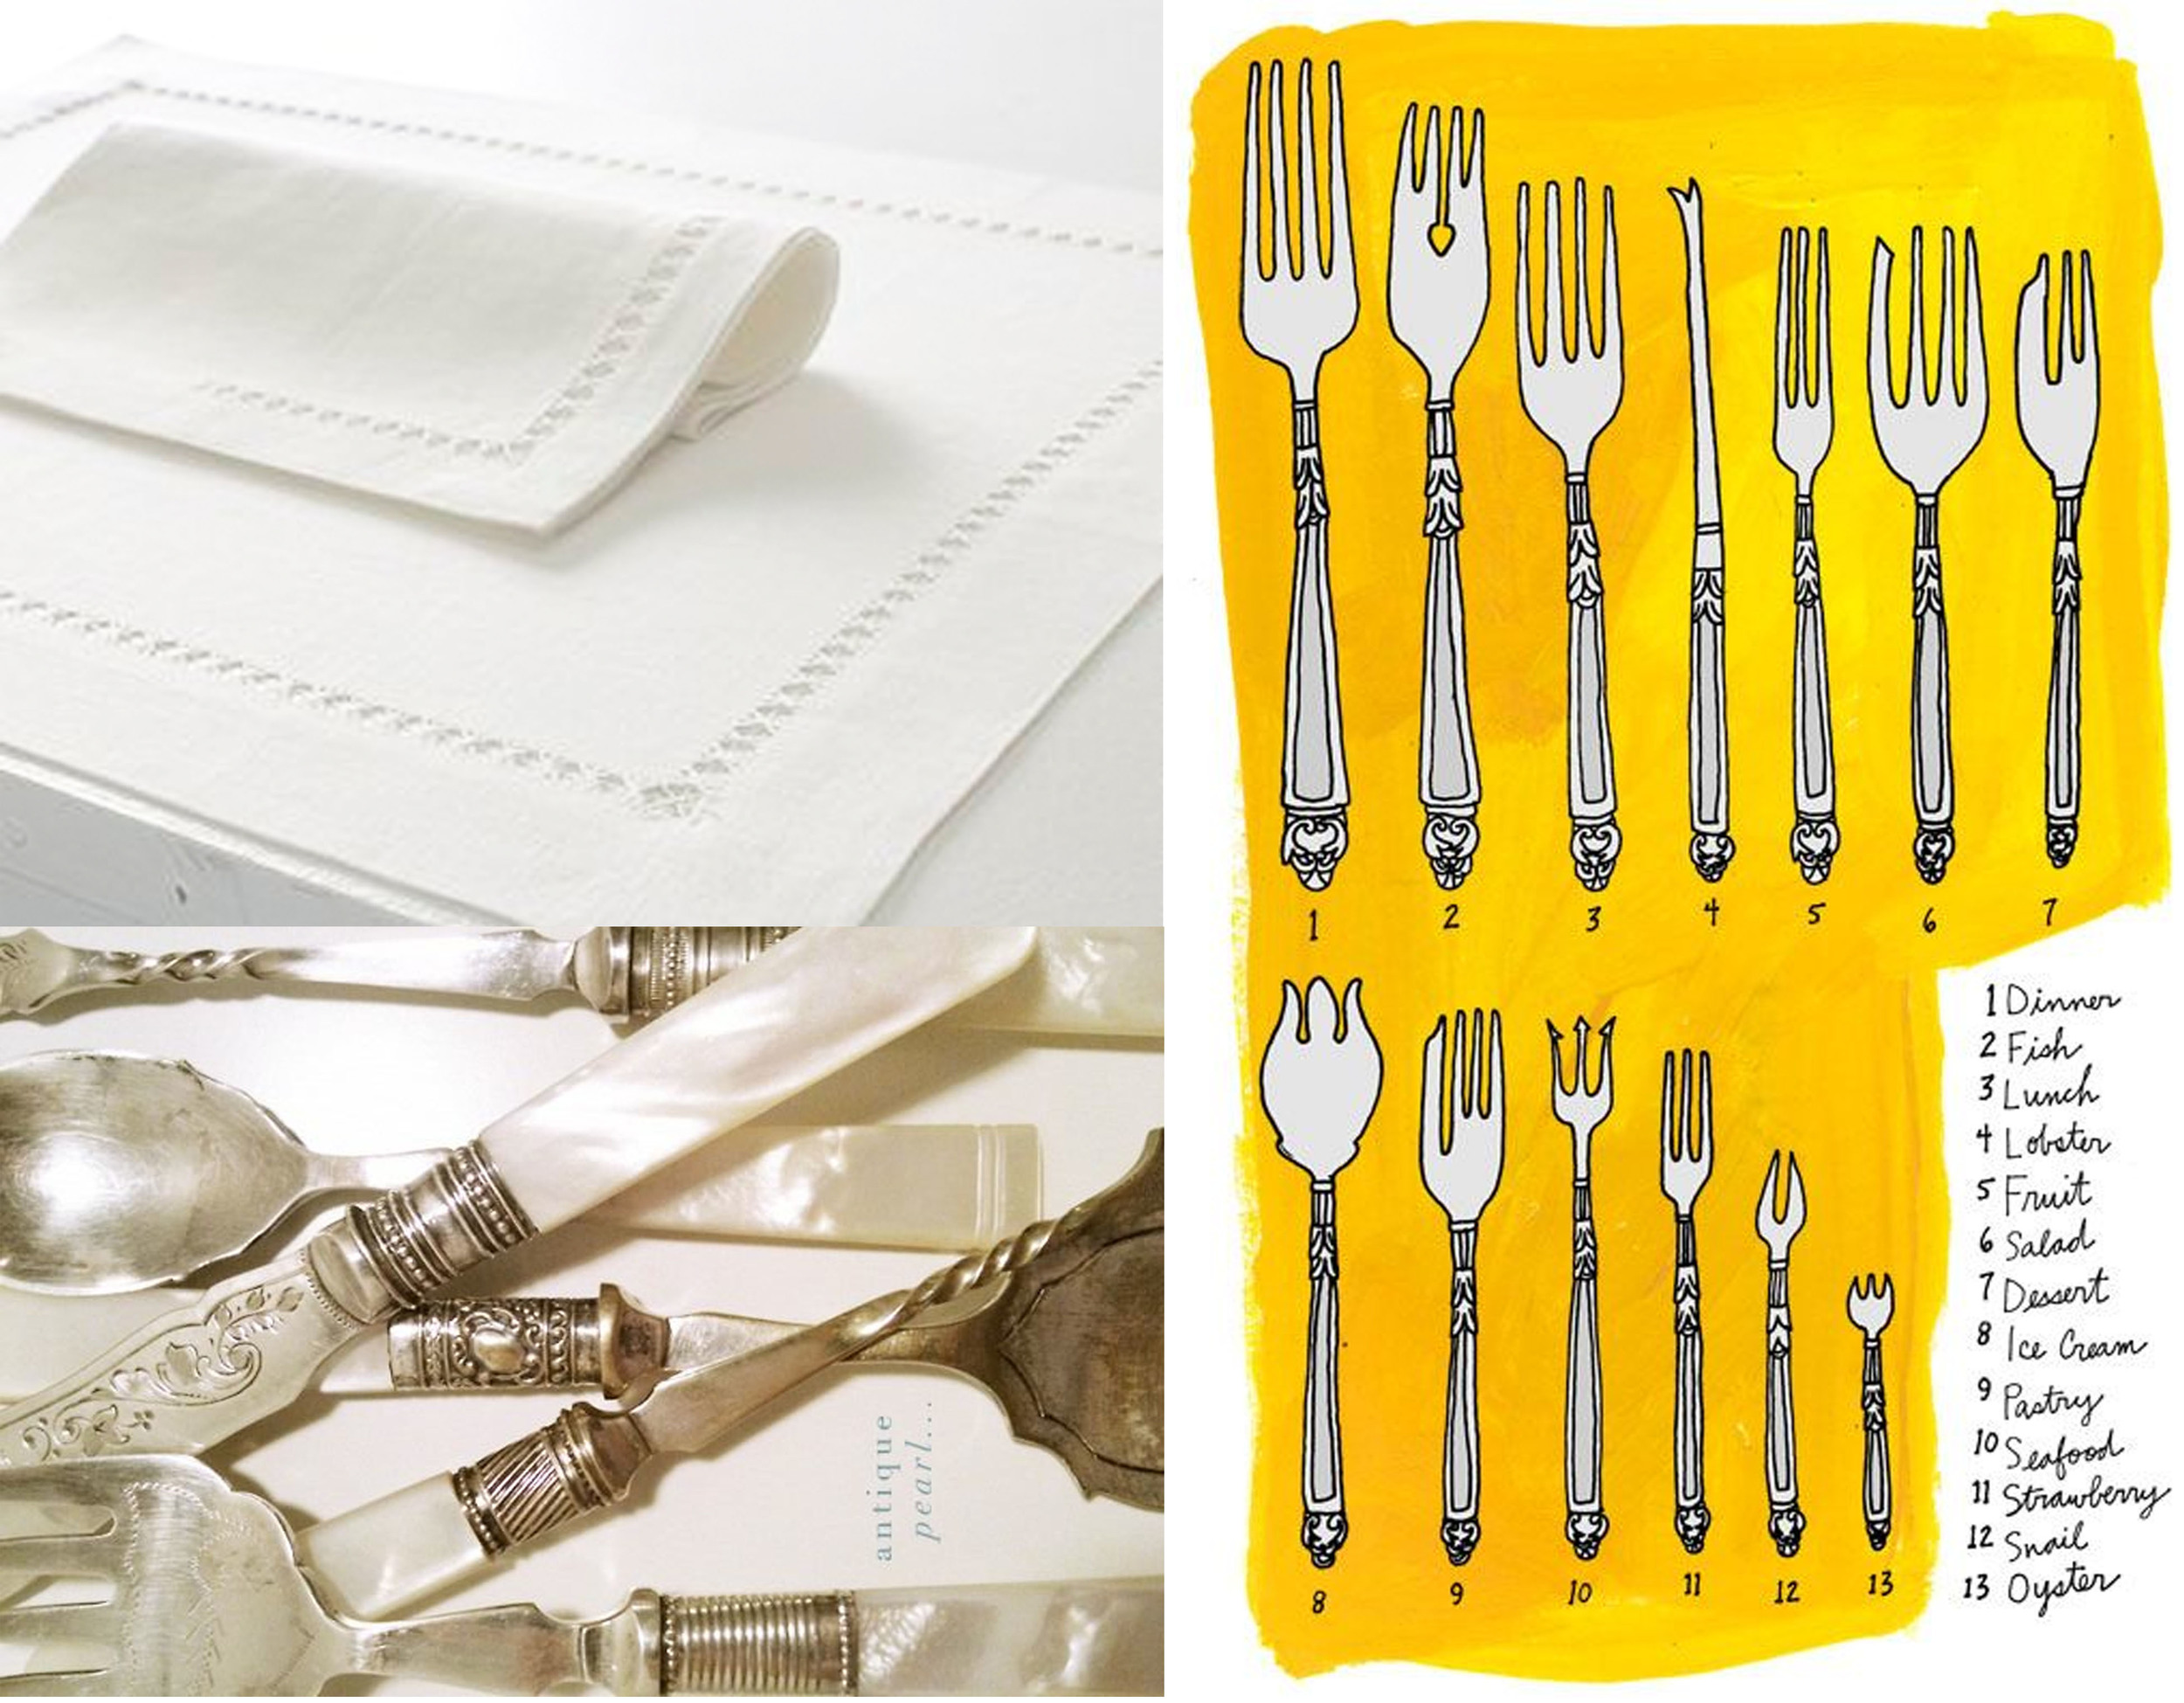 placemat and napkin  Decopur  - mother-of-pearl cutlery via  Pinterest  - drawing  Julia Rothman